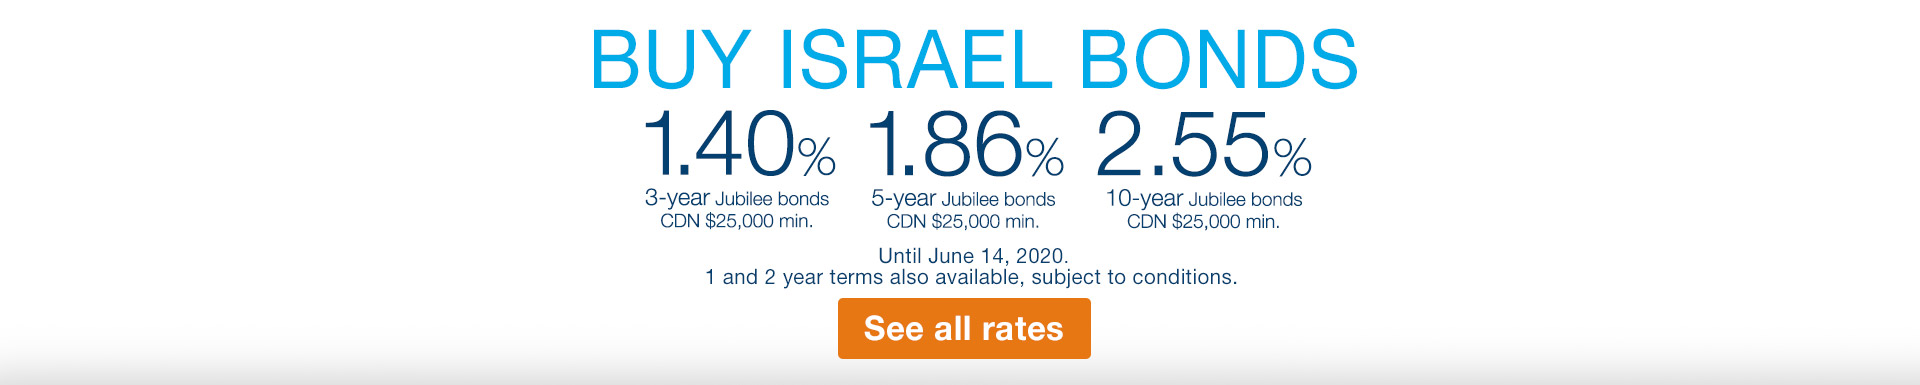 Israel Bonds Top Rate 4.63% until November 30 2018